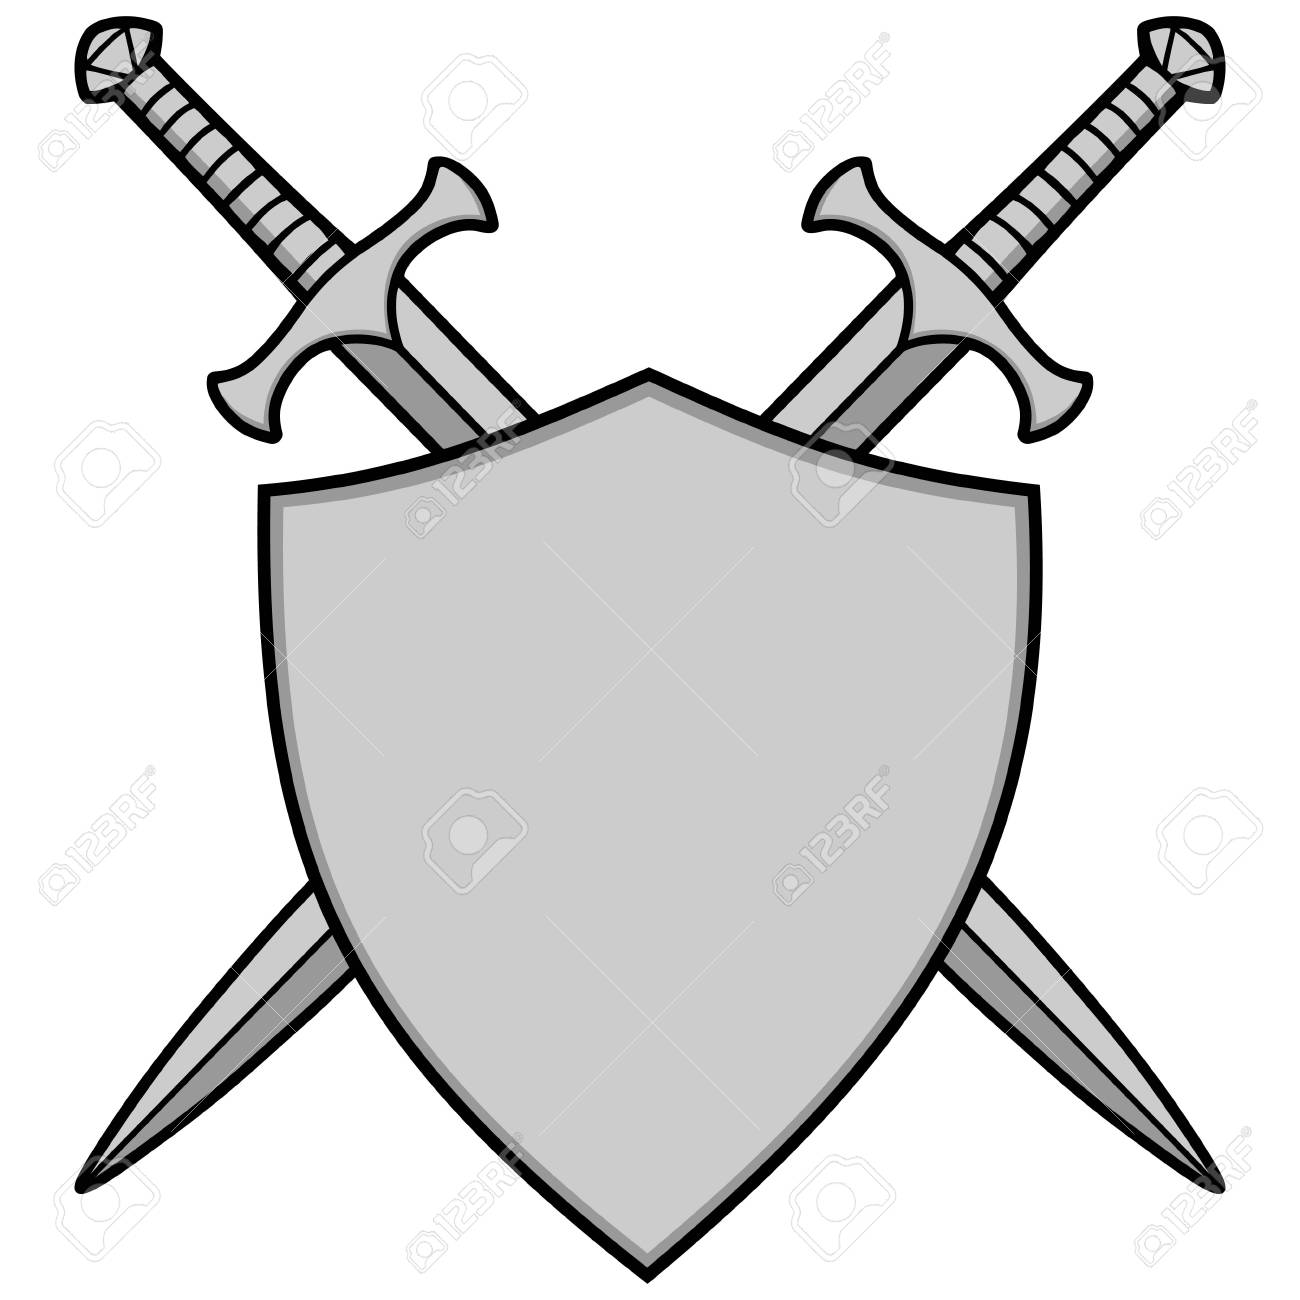 Crossed Swords and Shield Illustration..